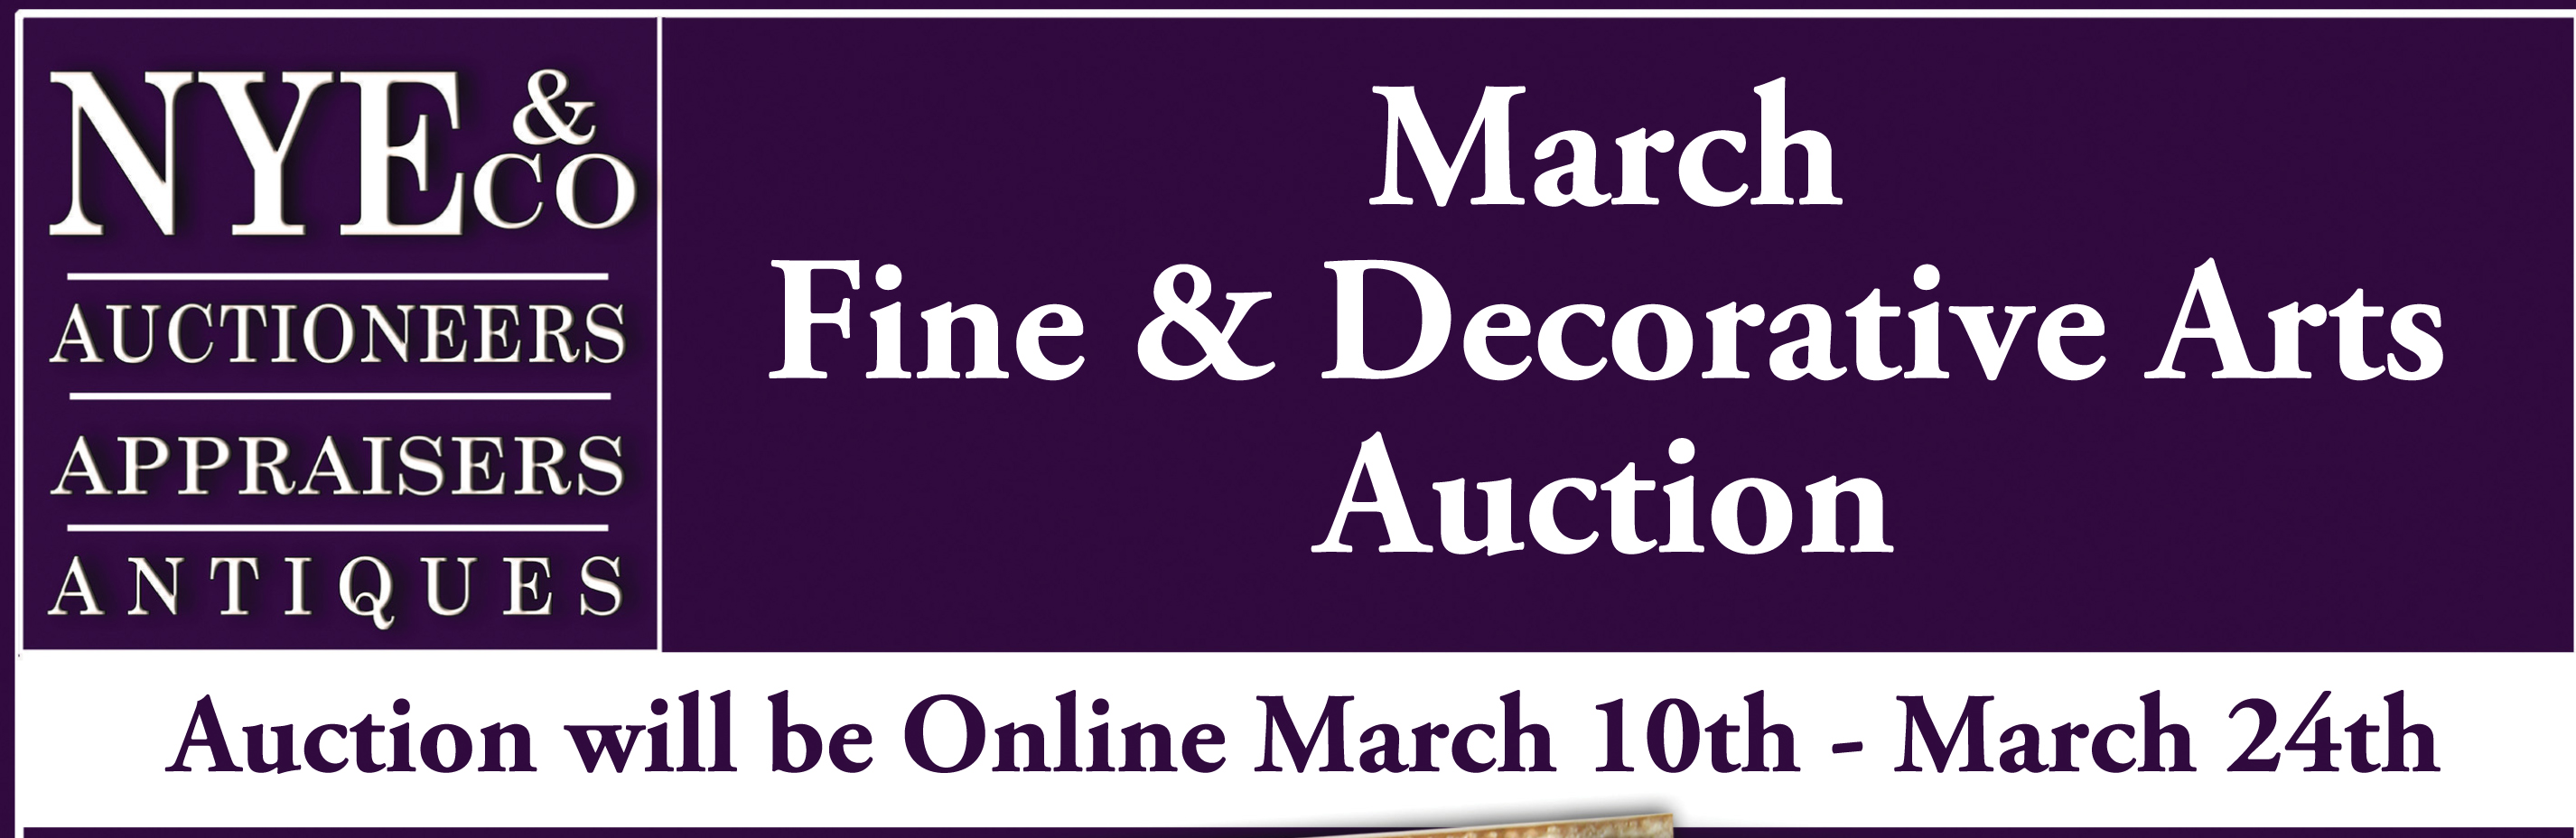 Nye & Co Fine and Decorative Arts Auction